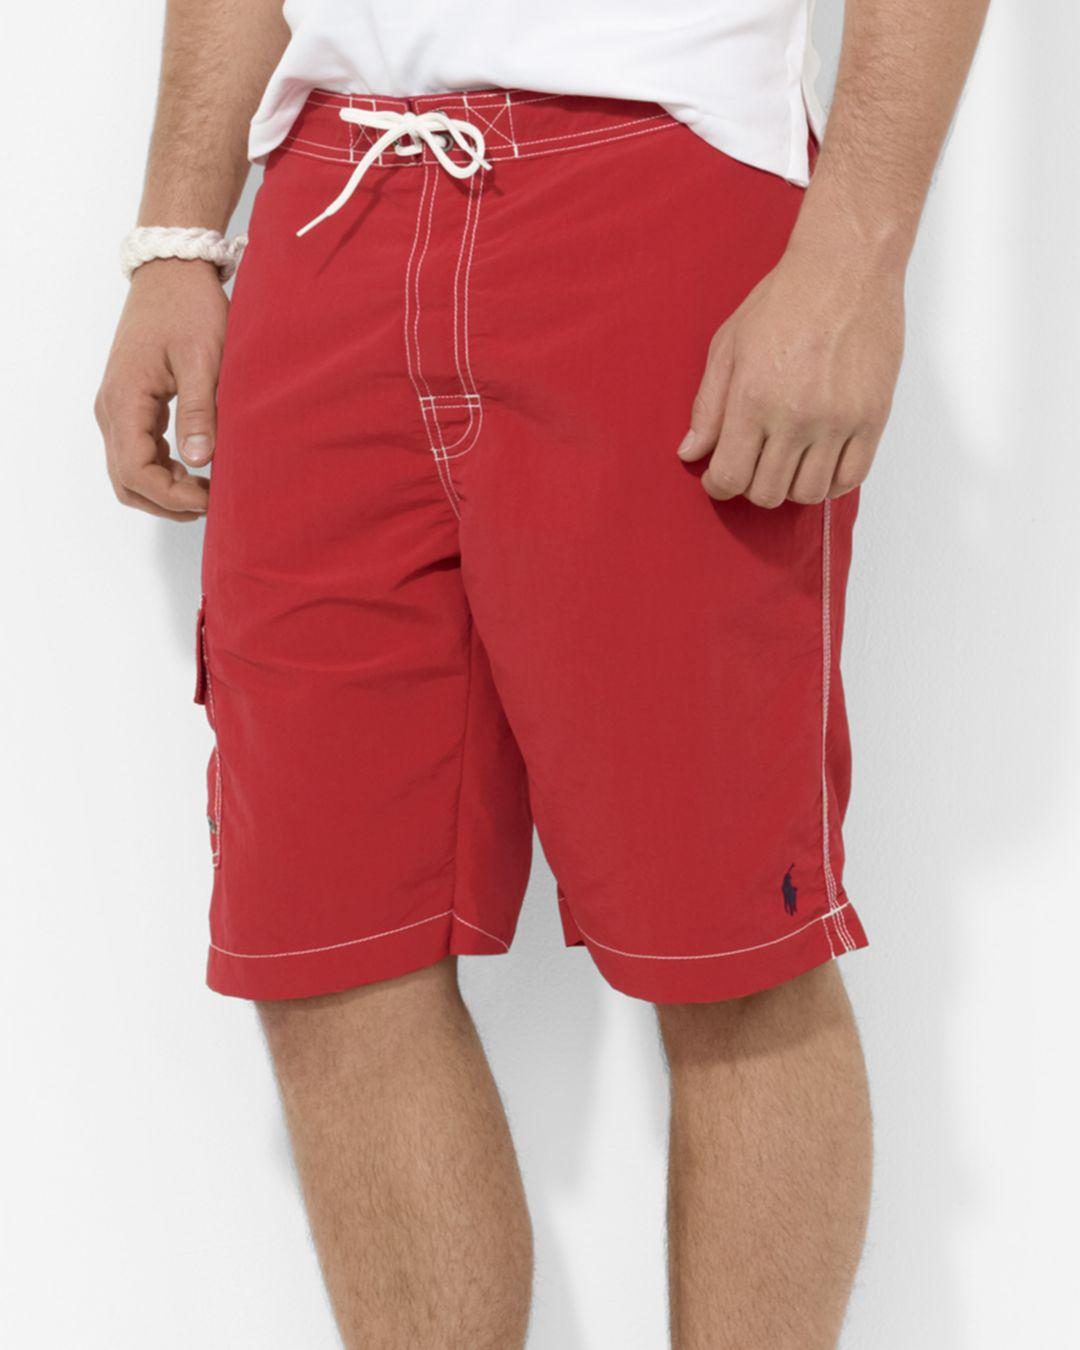 b0a474537 Polo Ralph Lauren Kailua Swim Trunks in Red for Men - Lyst